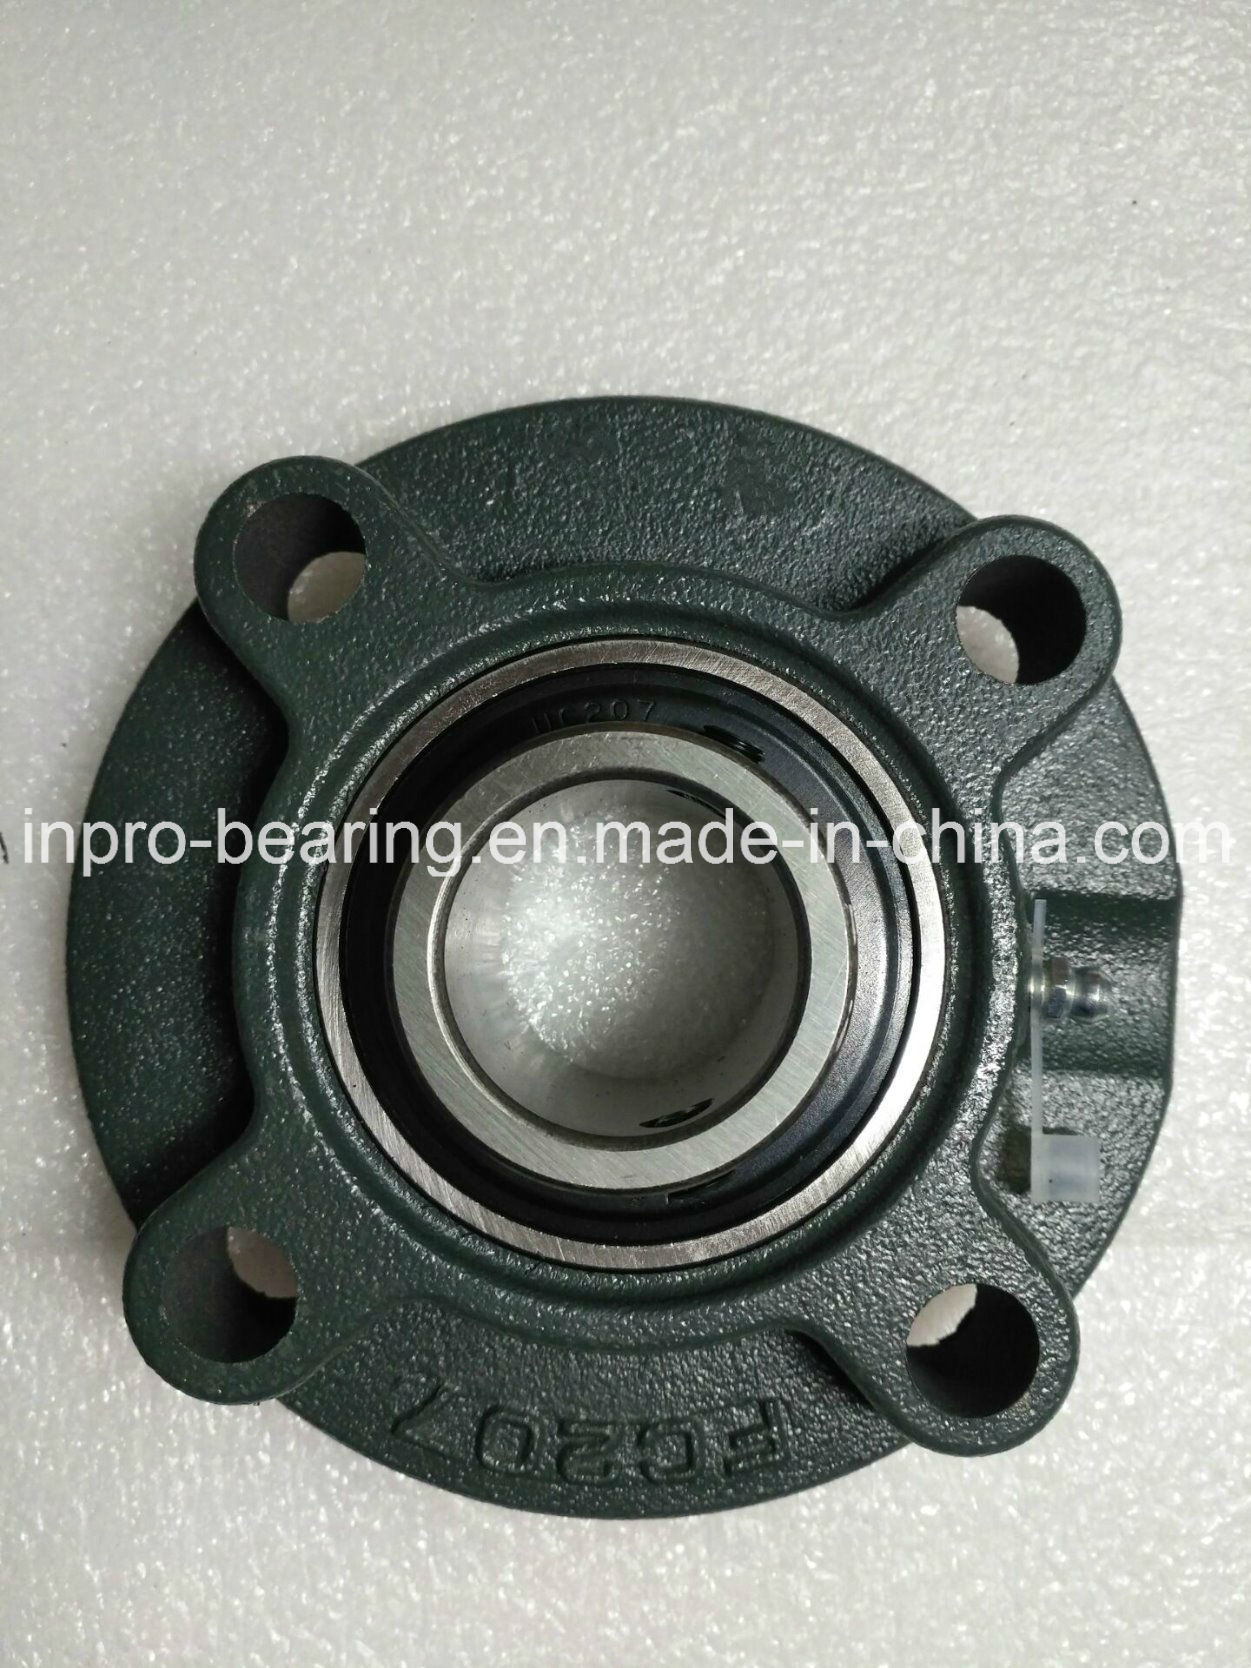 Flange Cartridge Units Cast Iron Stainless Steel Ucfc205-16 pictures & photos